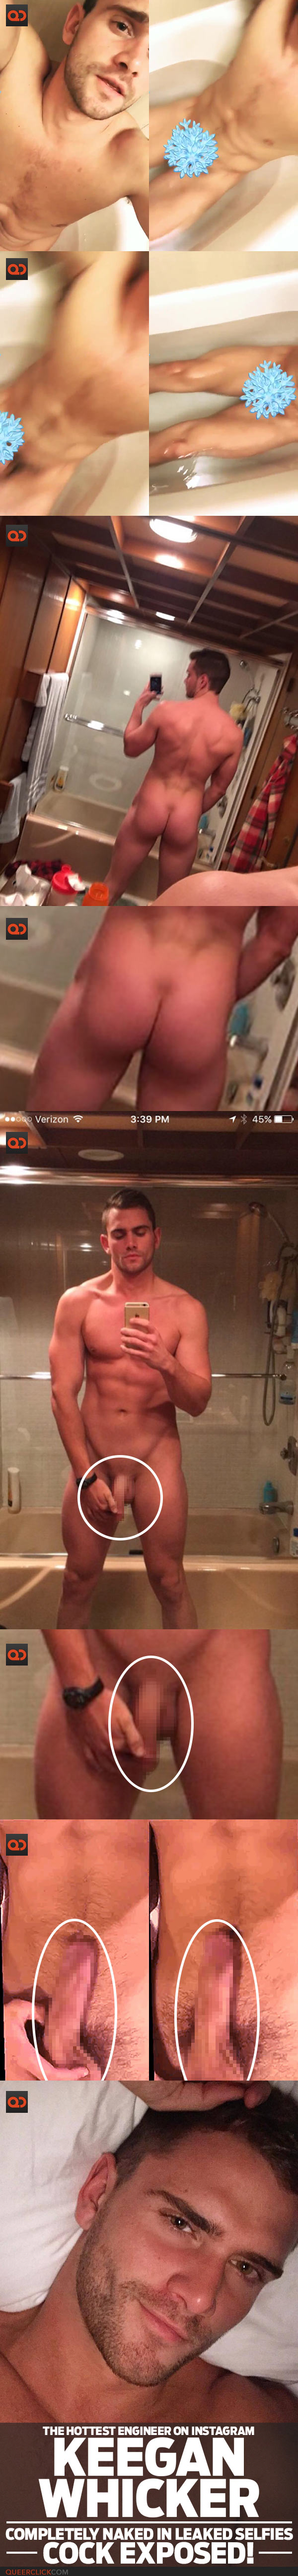 Keegan Whicker, The Hottest Engineer On Instagram, Completely Naked In Leaked Selfie - Cock Exposed!